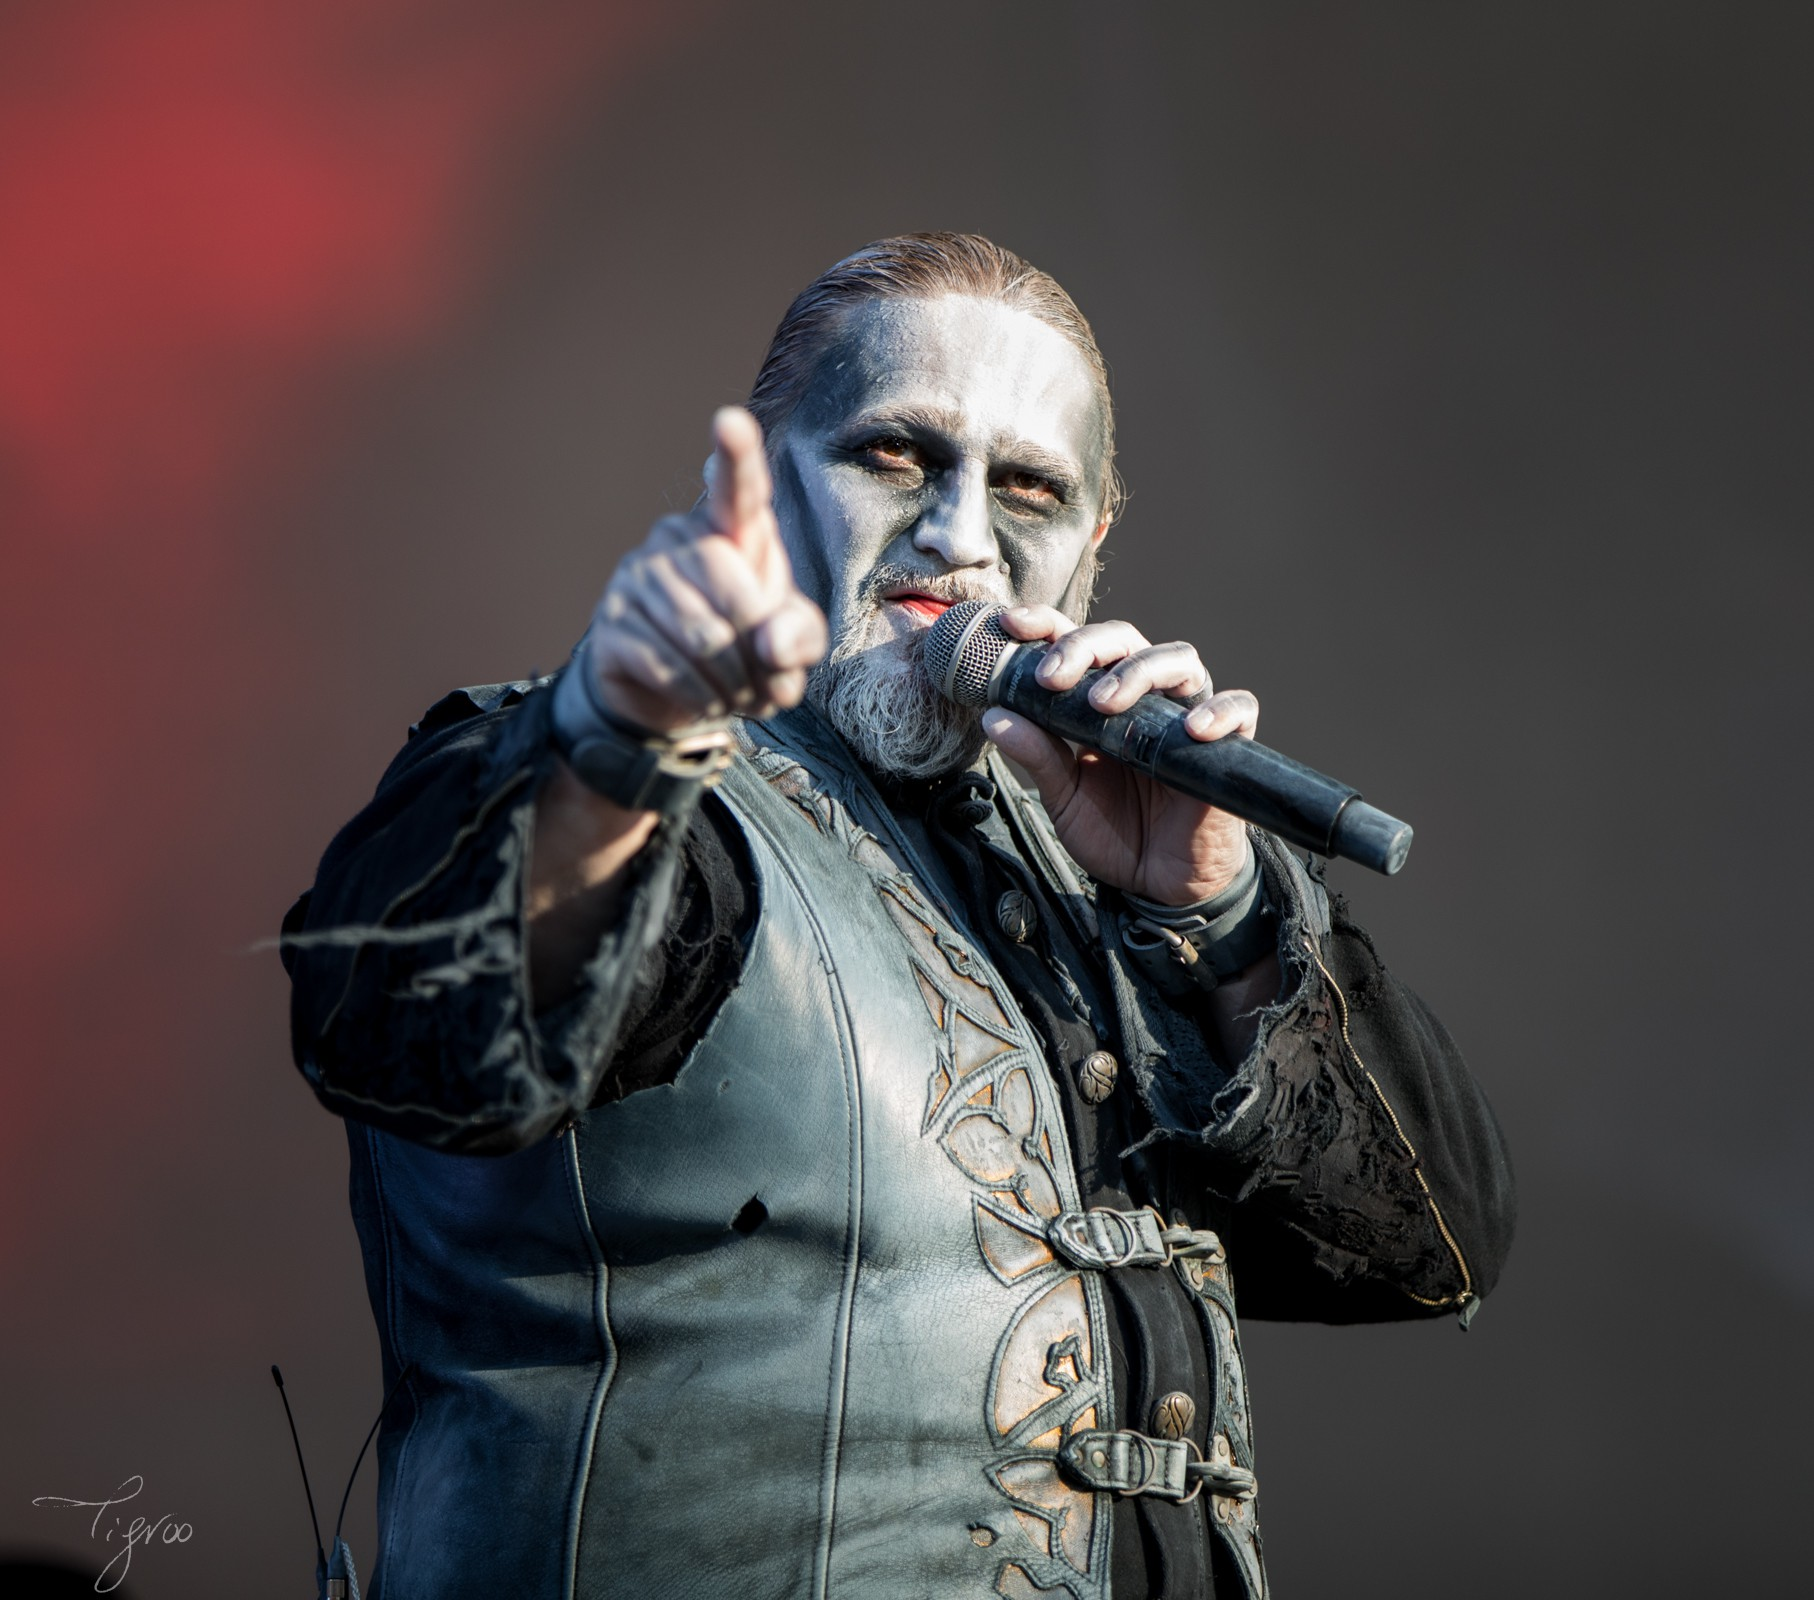 Knotfest meets Hellfest Powerwolf